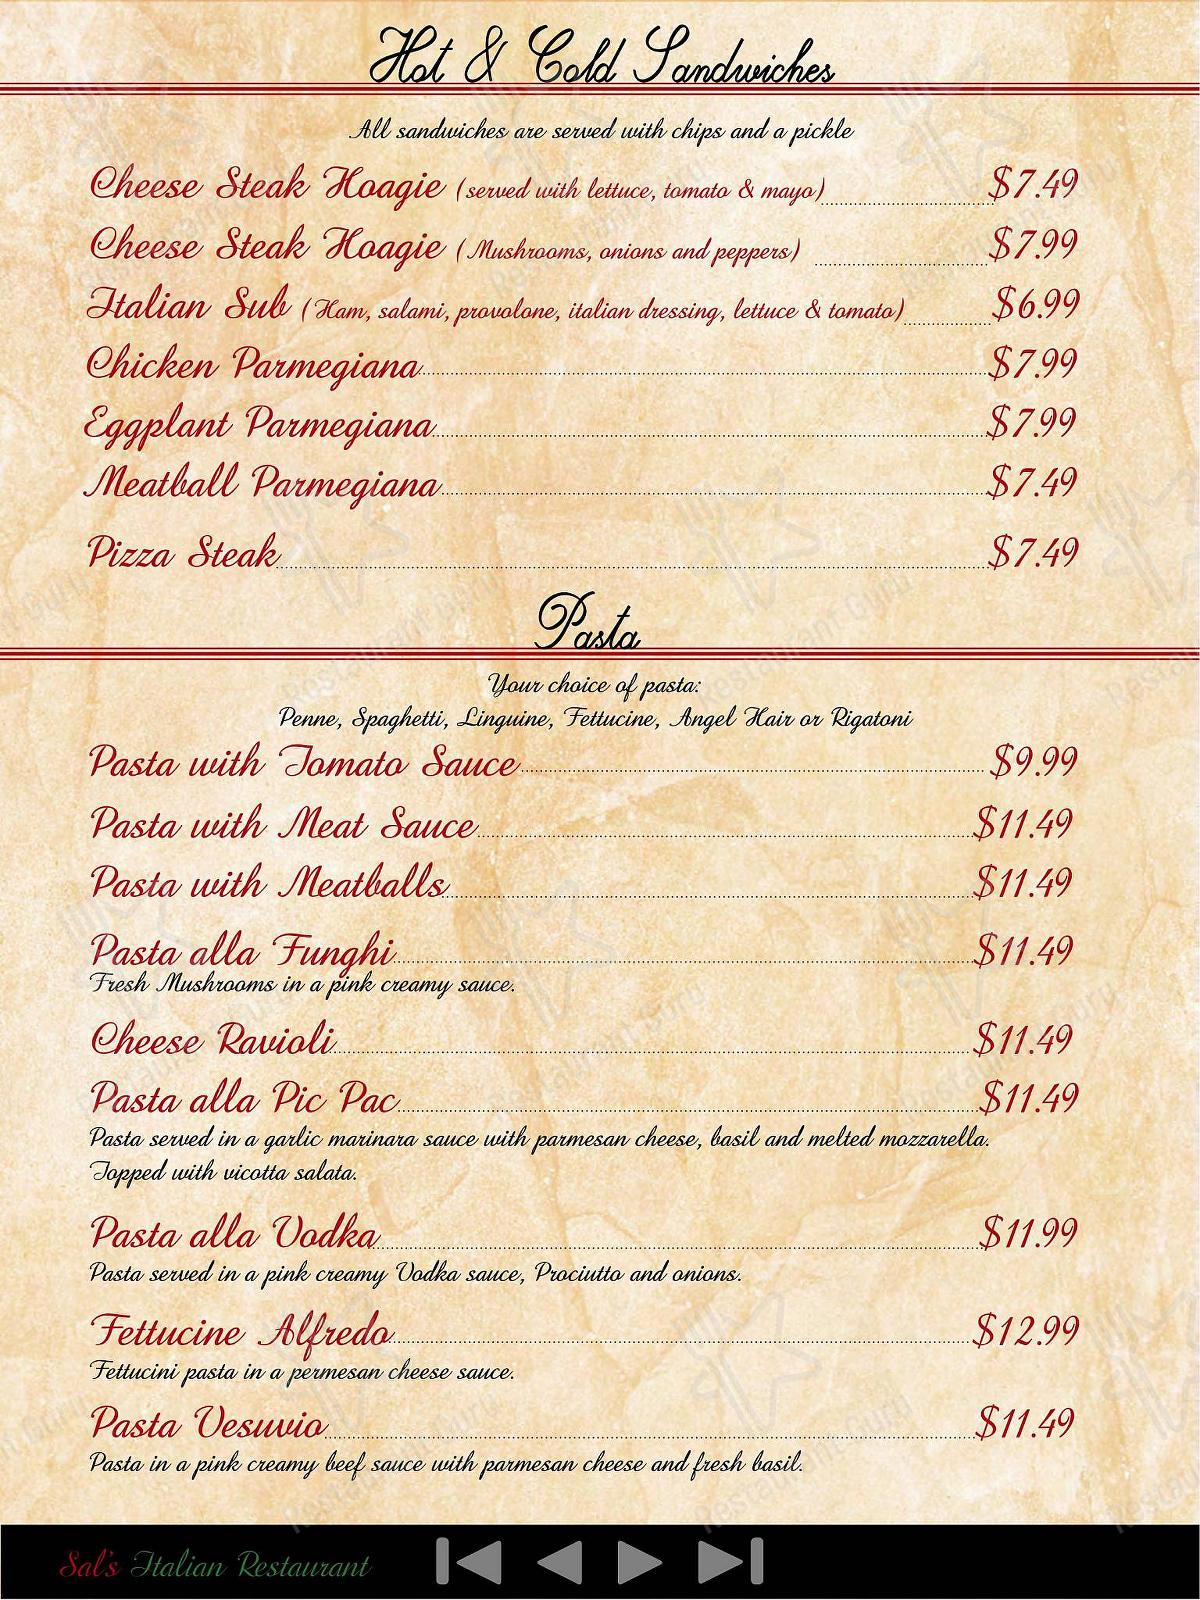 Check out the menu for Sal's italian restaurant